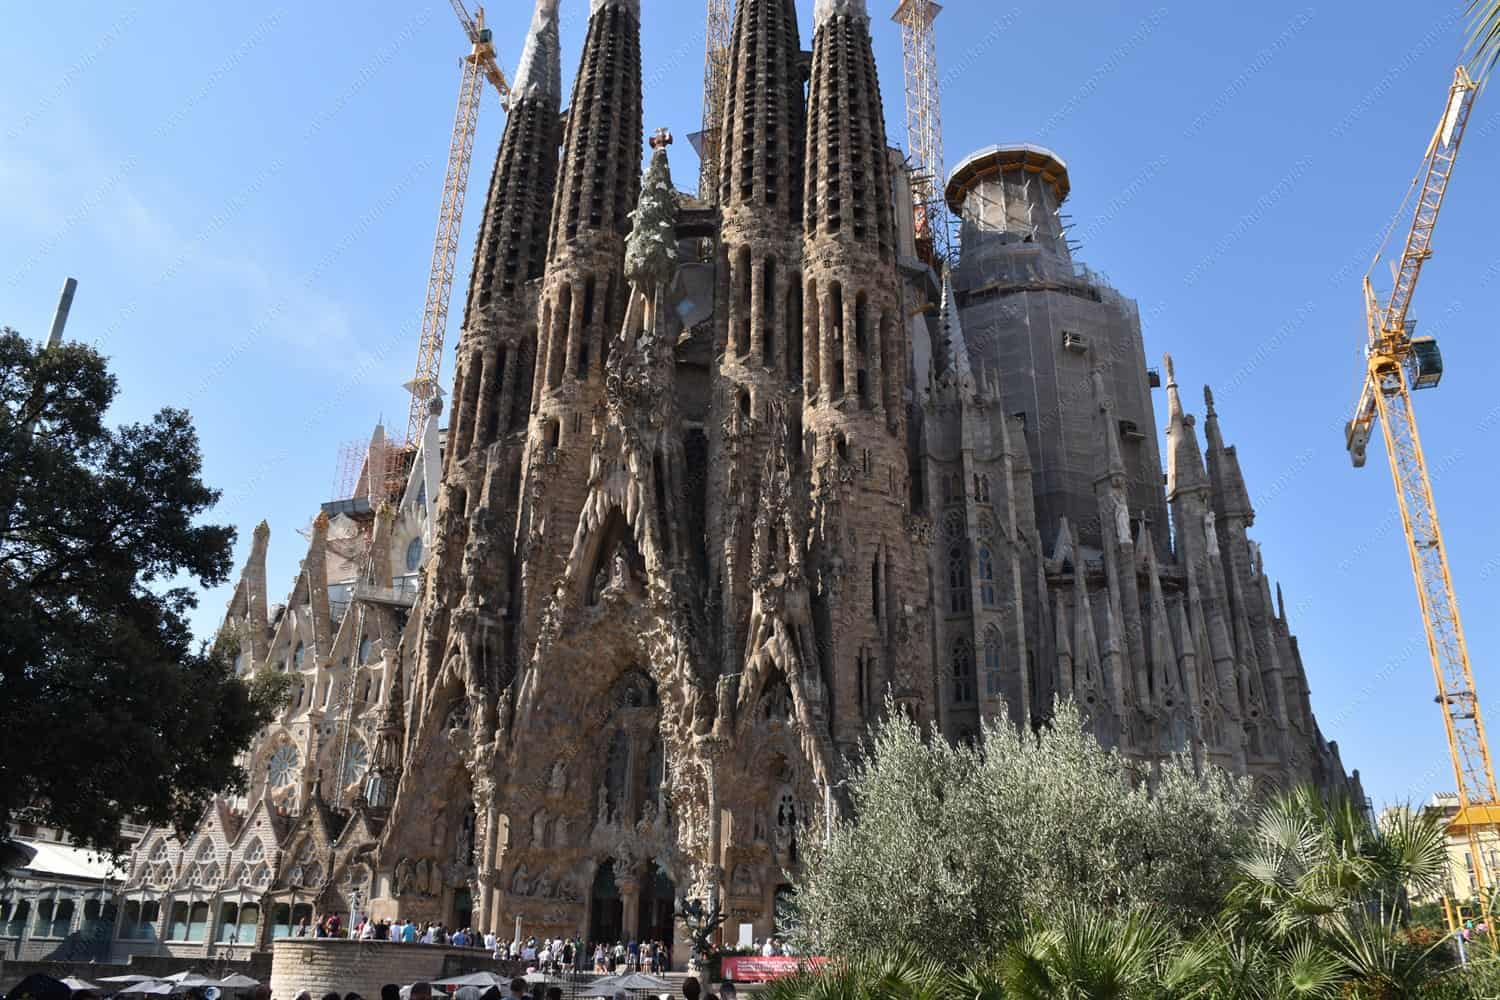 Our visit  to the famous Sagrada Familia in Barcelona